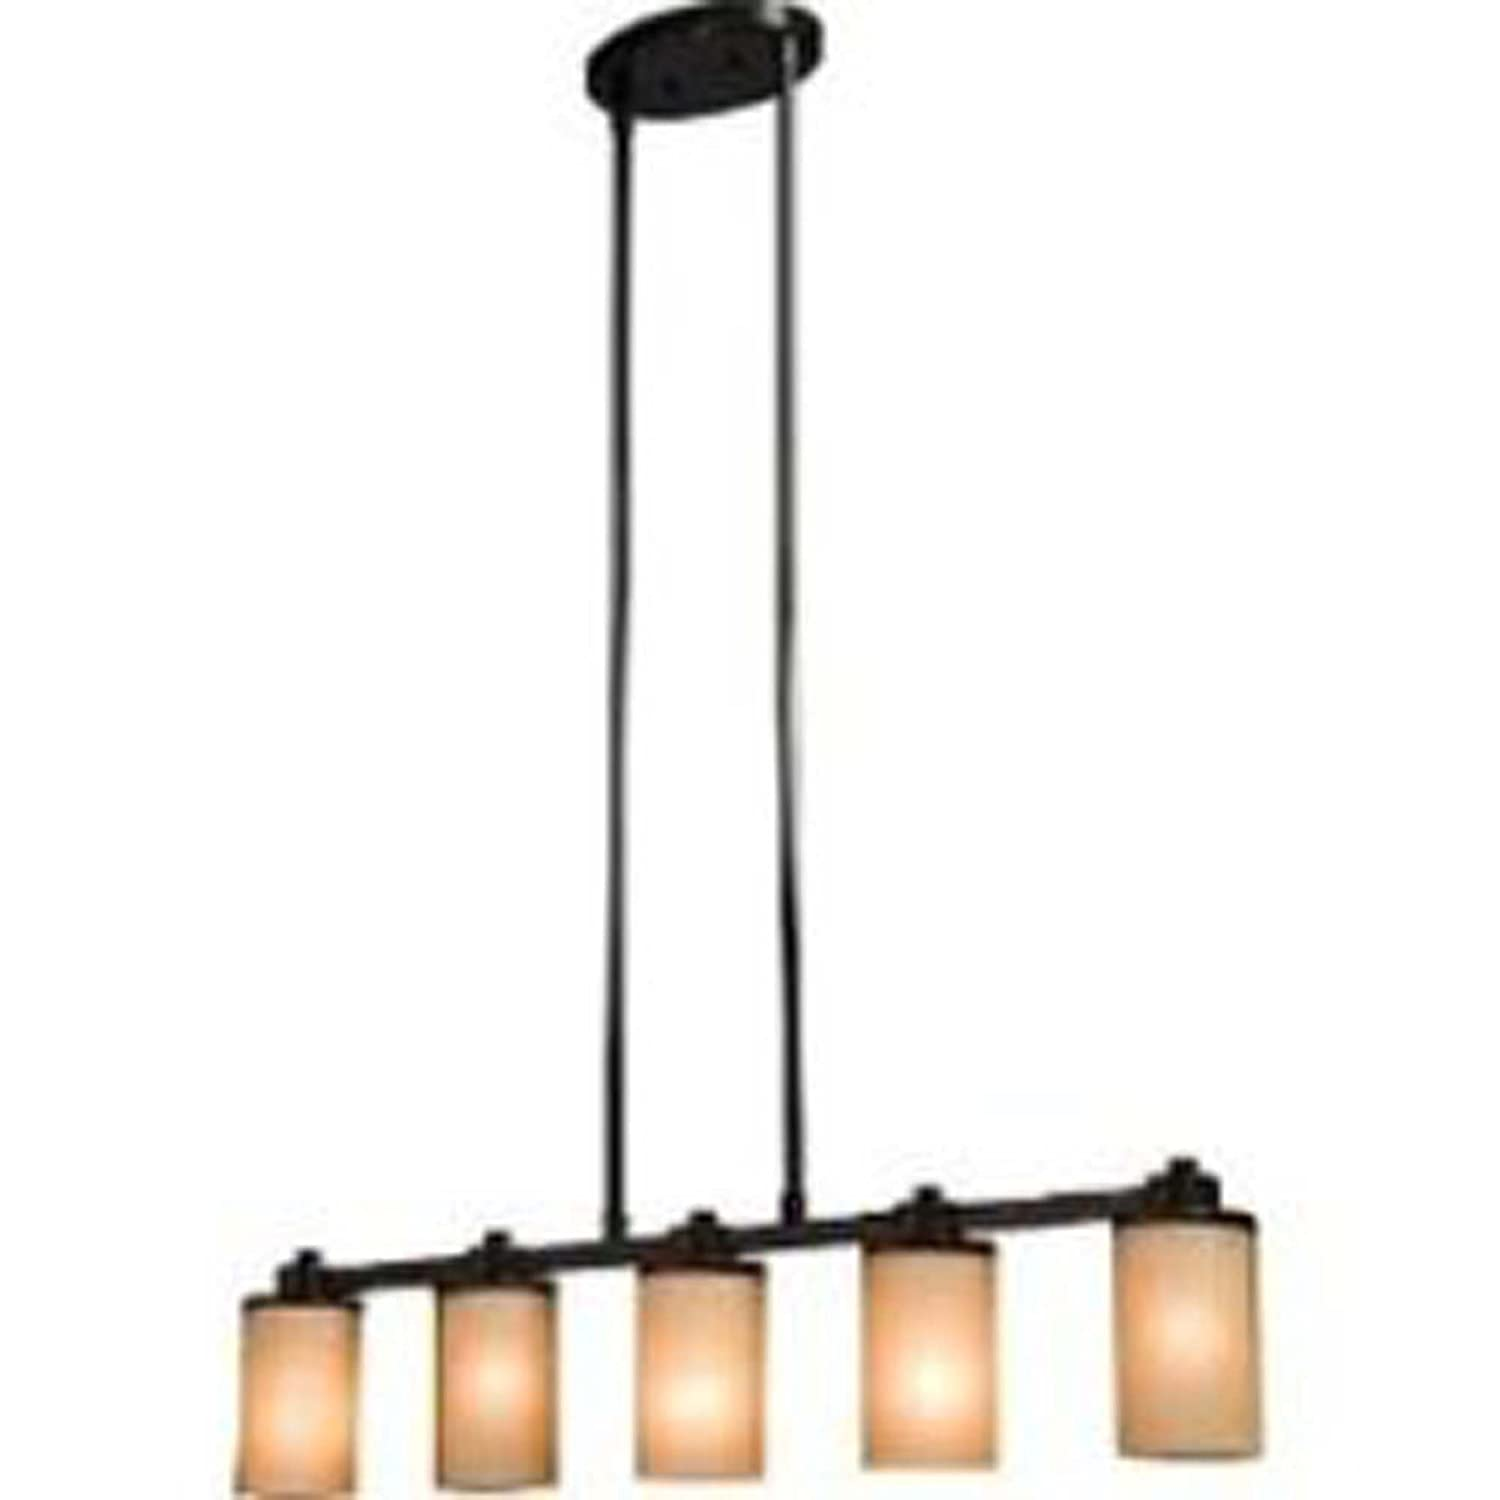 Artcraft Lighting Parkdale 5 Light Island Light Oil Rubbed Bronze